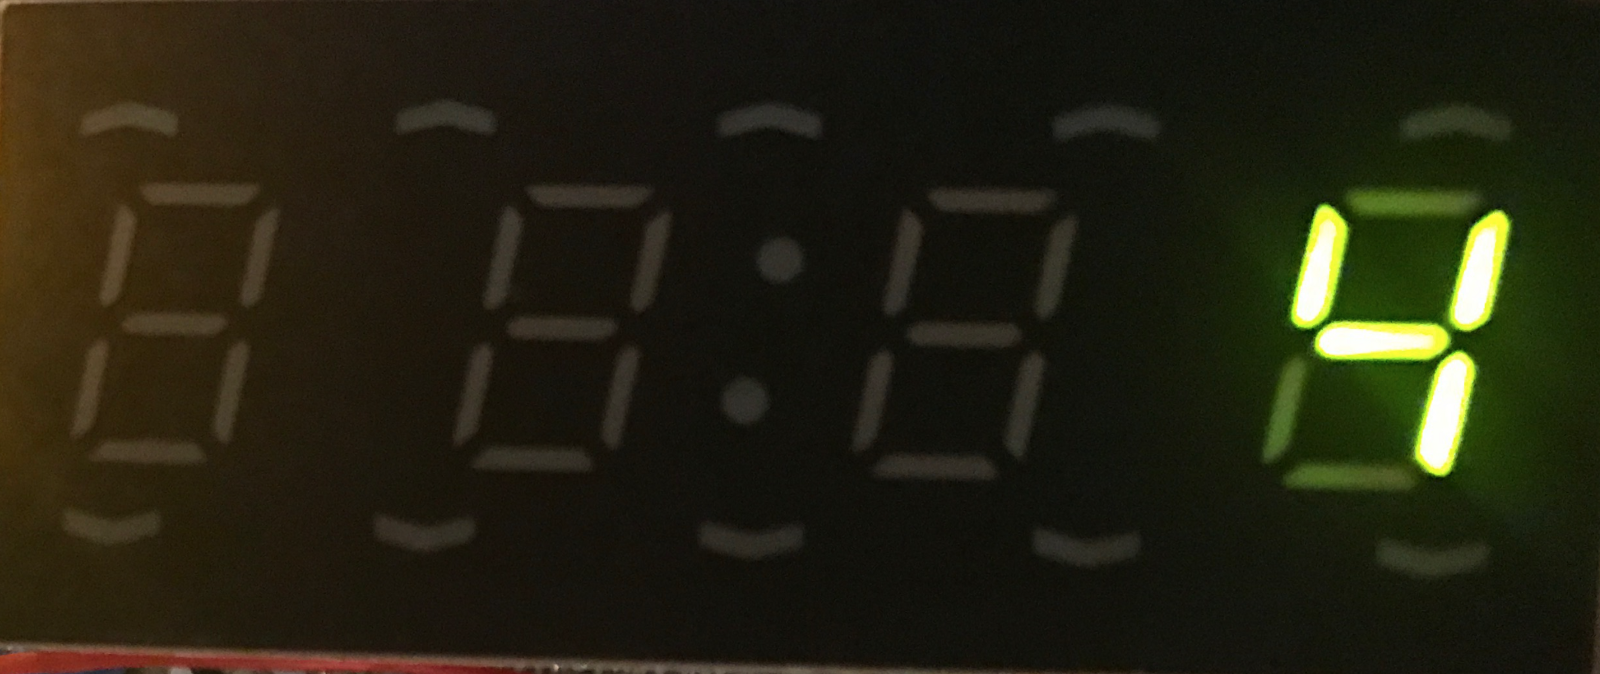 4x7 Segment Led Display As A Digital Clock Using Two 74hct595 8 Bit The Each Symbol Into 7segment It May Look Like This 16 Bits Correspond To X 2 3 4 5 1 H E F G B C D I Some Tests Examples